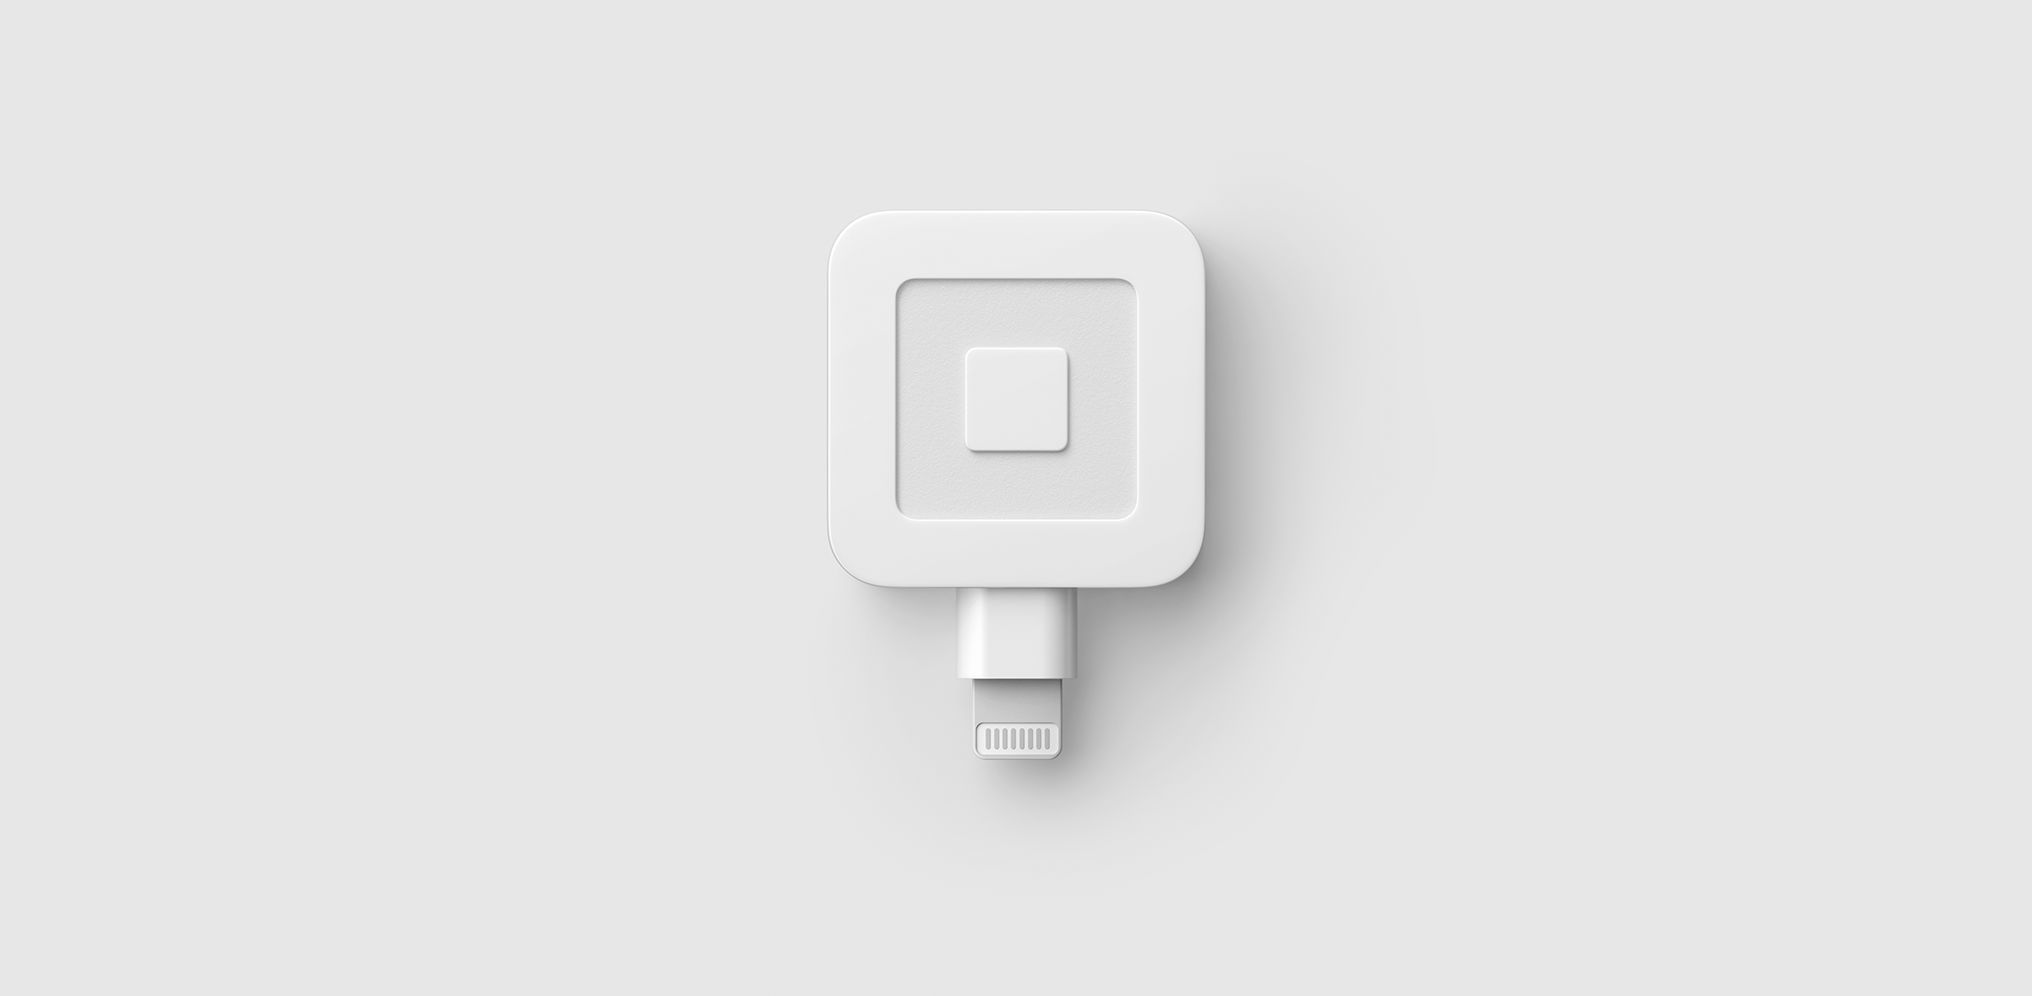 Square Reader for magstripe (with Lightning connector) | Square Shop